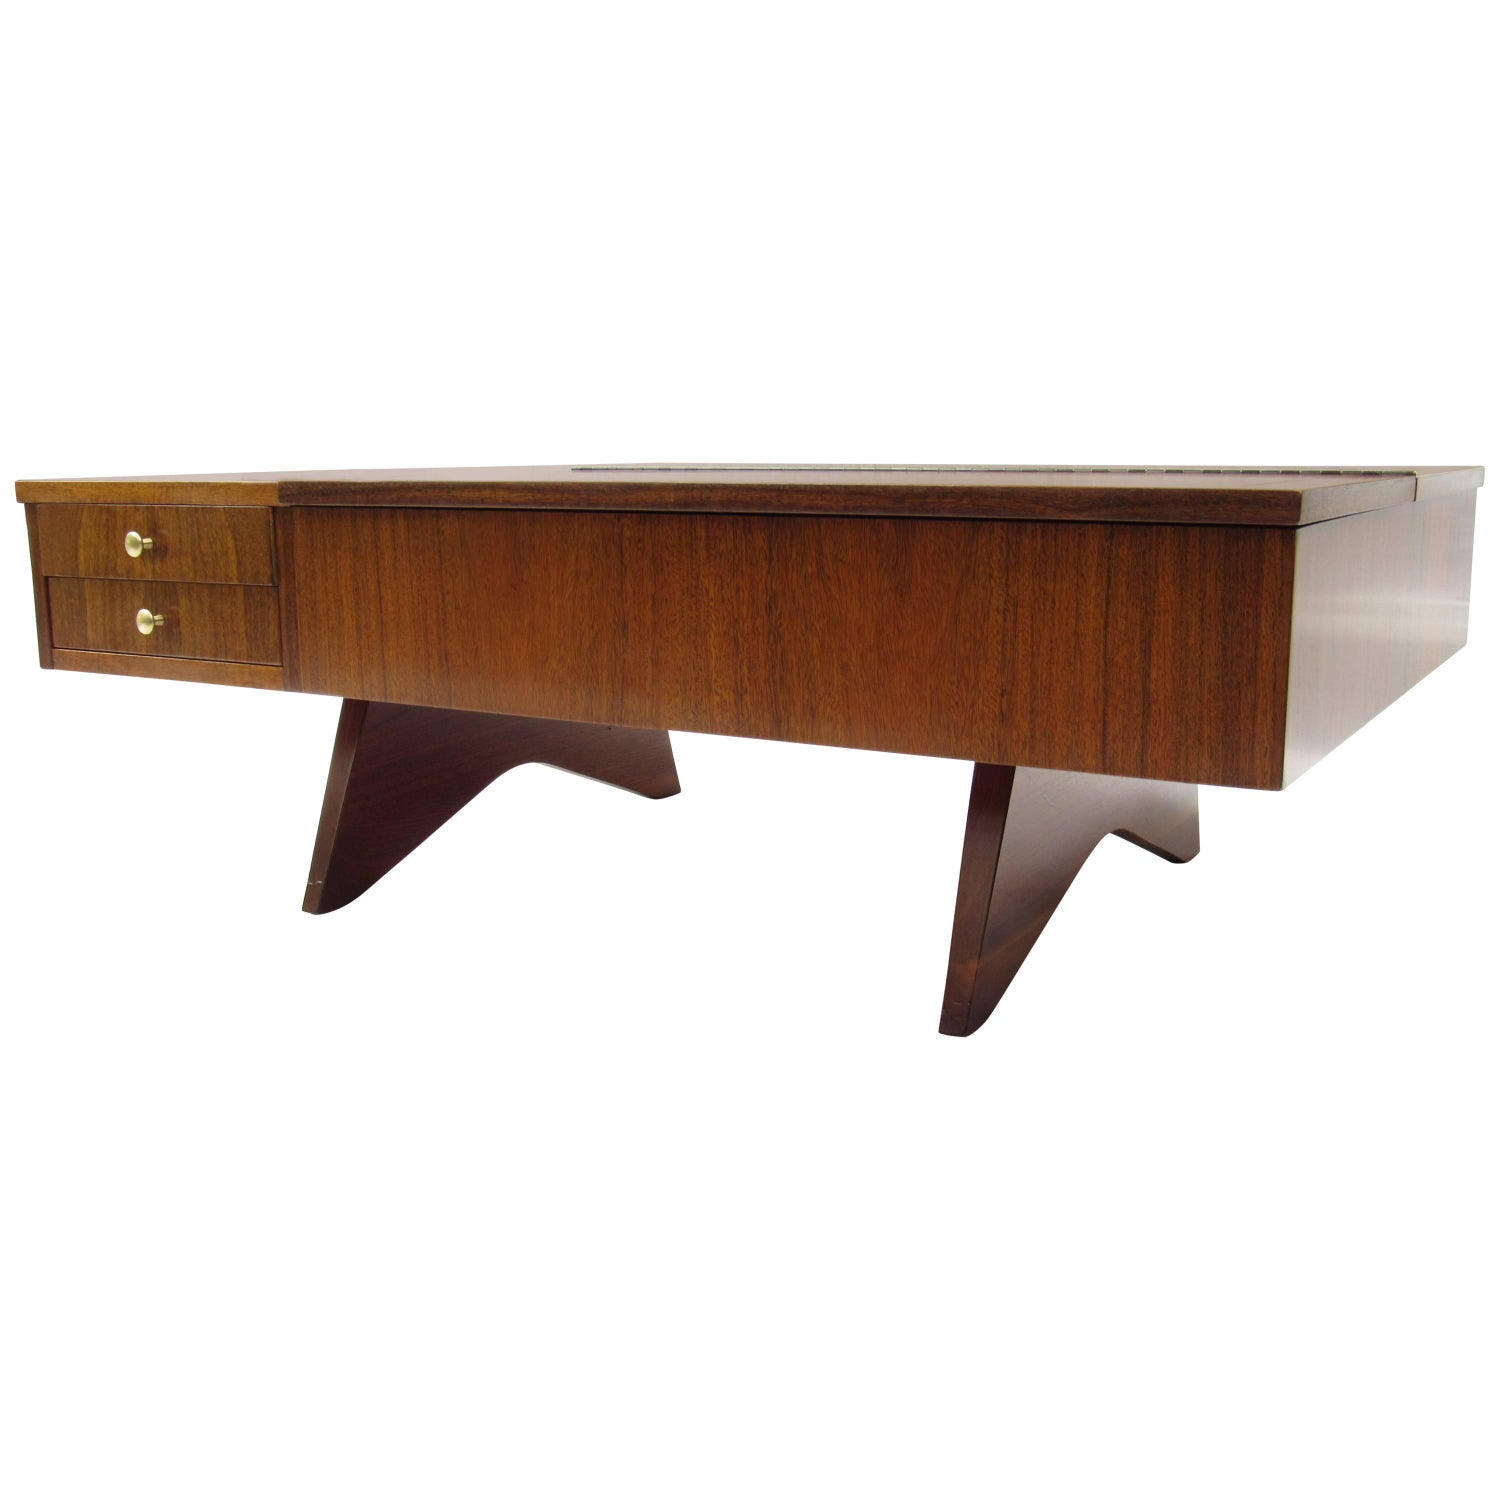 George Nakashima Coffee and Cocktail Tables 26 For Sale at 1stdibs